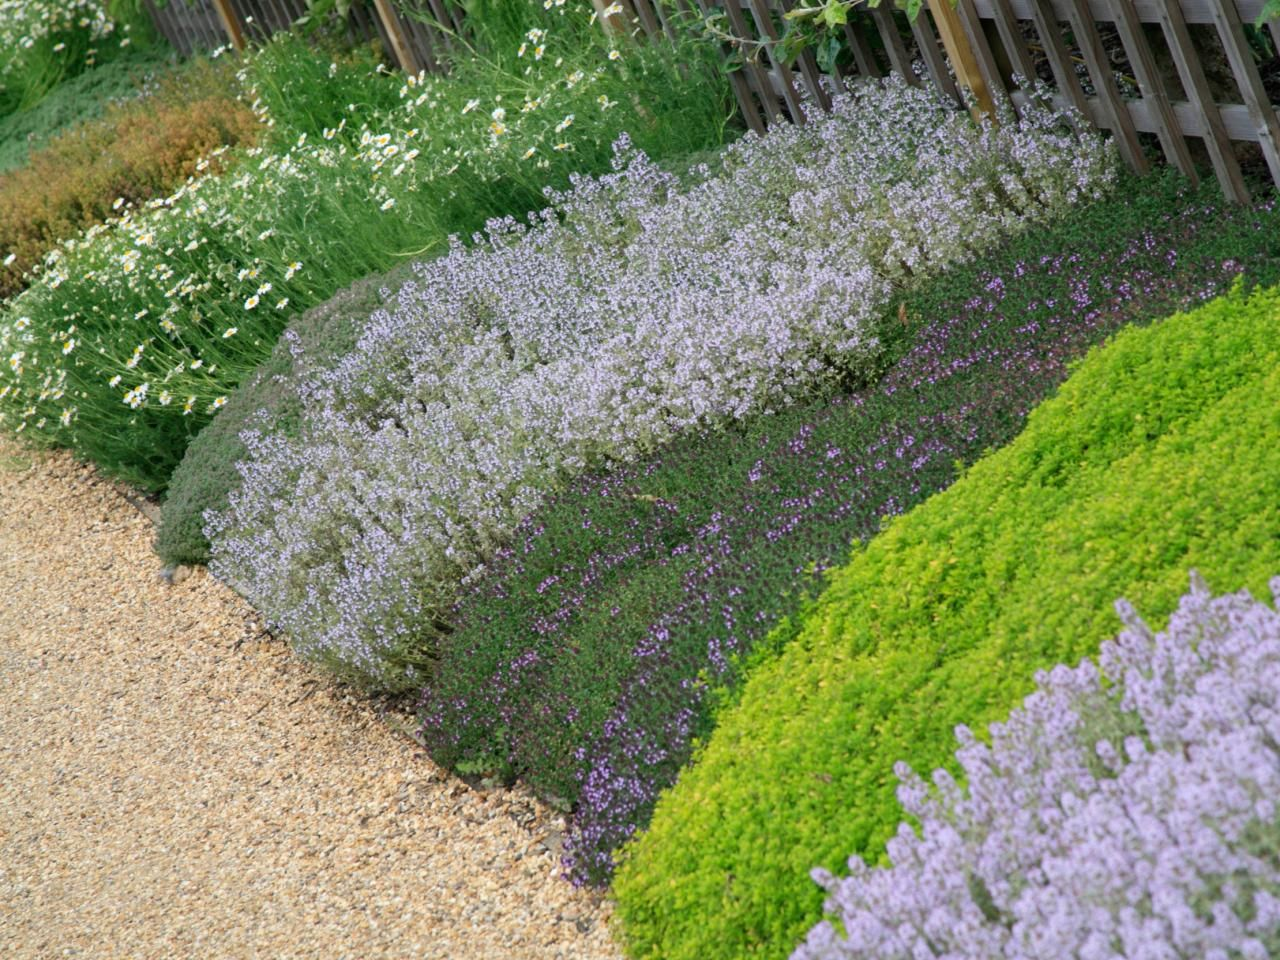 Groundcovers and Plants to Use As Lawn Alternatives